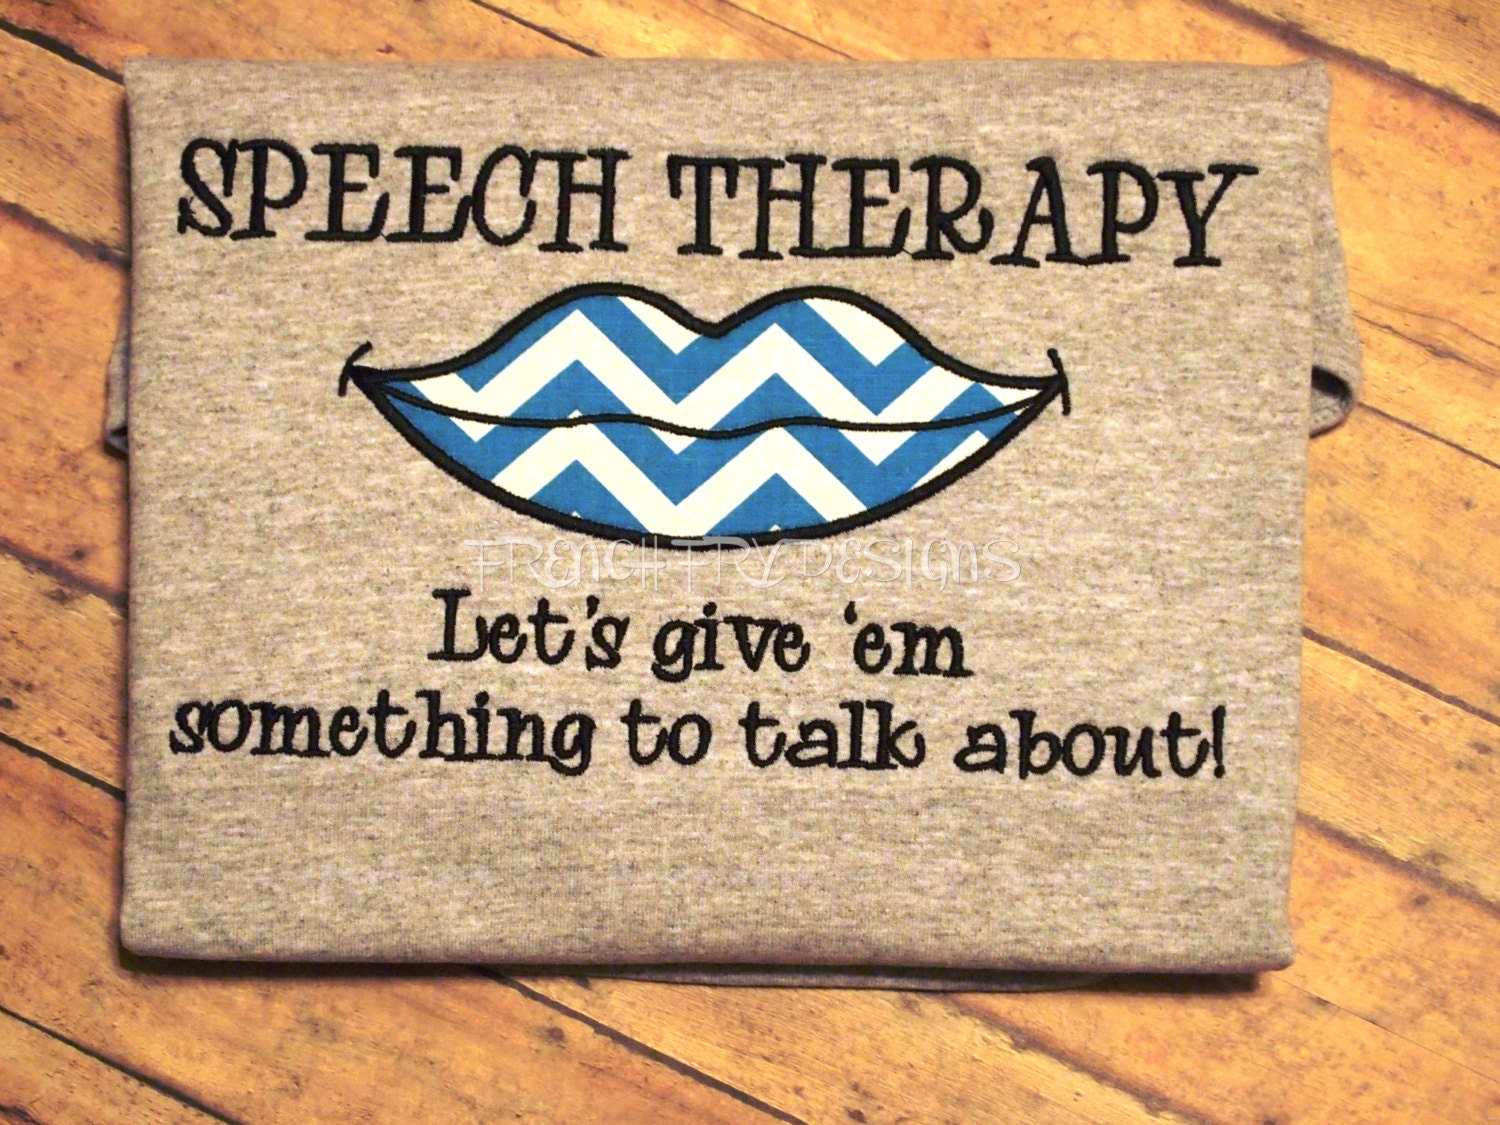 Speech Therapy Quotes Speech Therapy Let's Give Them Something To Talk About